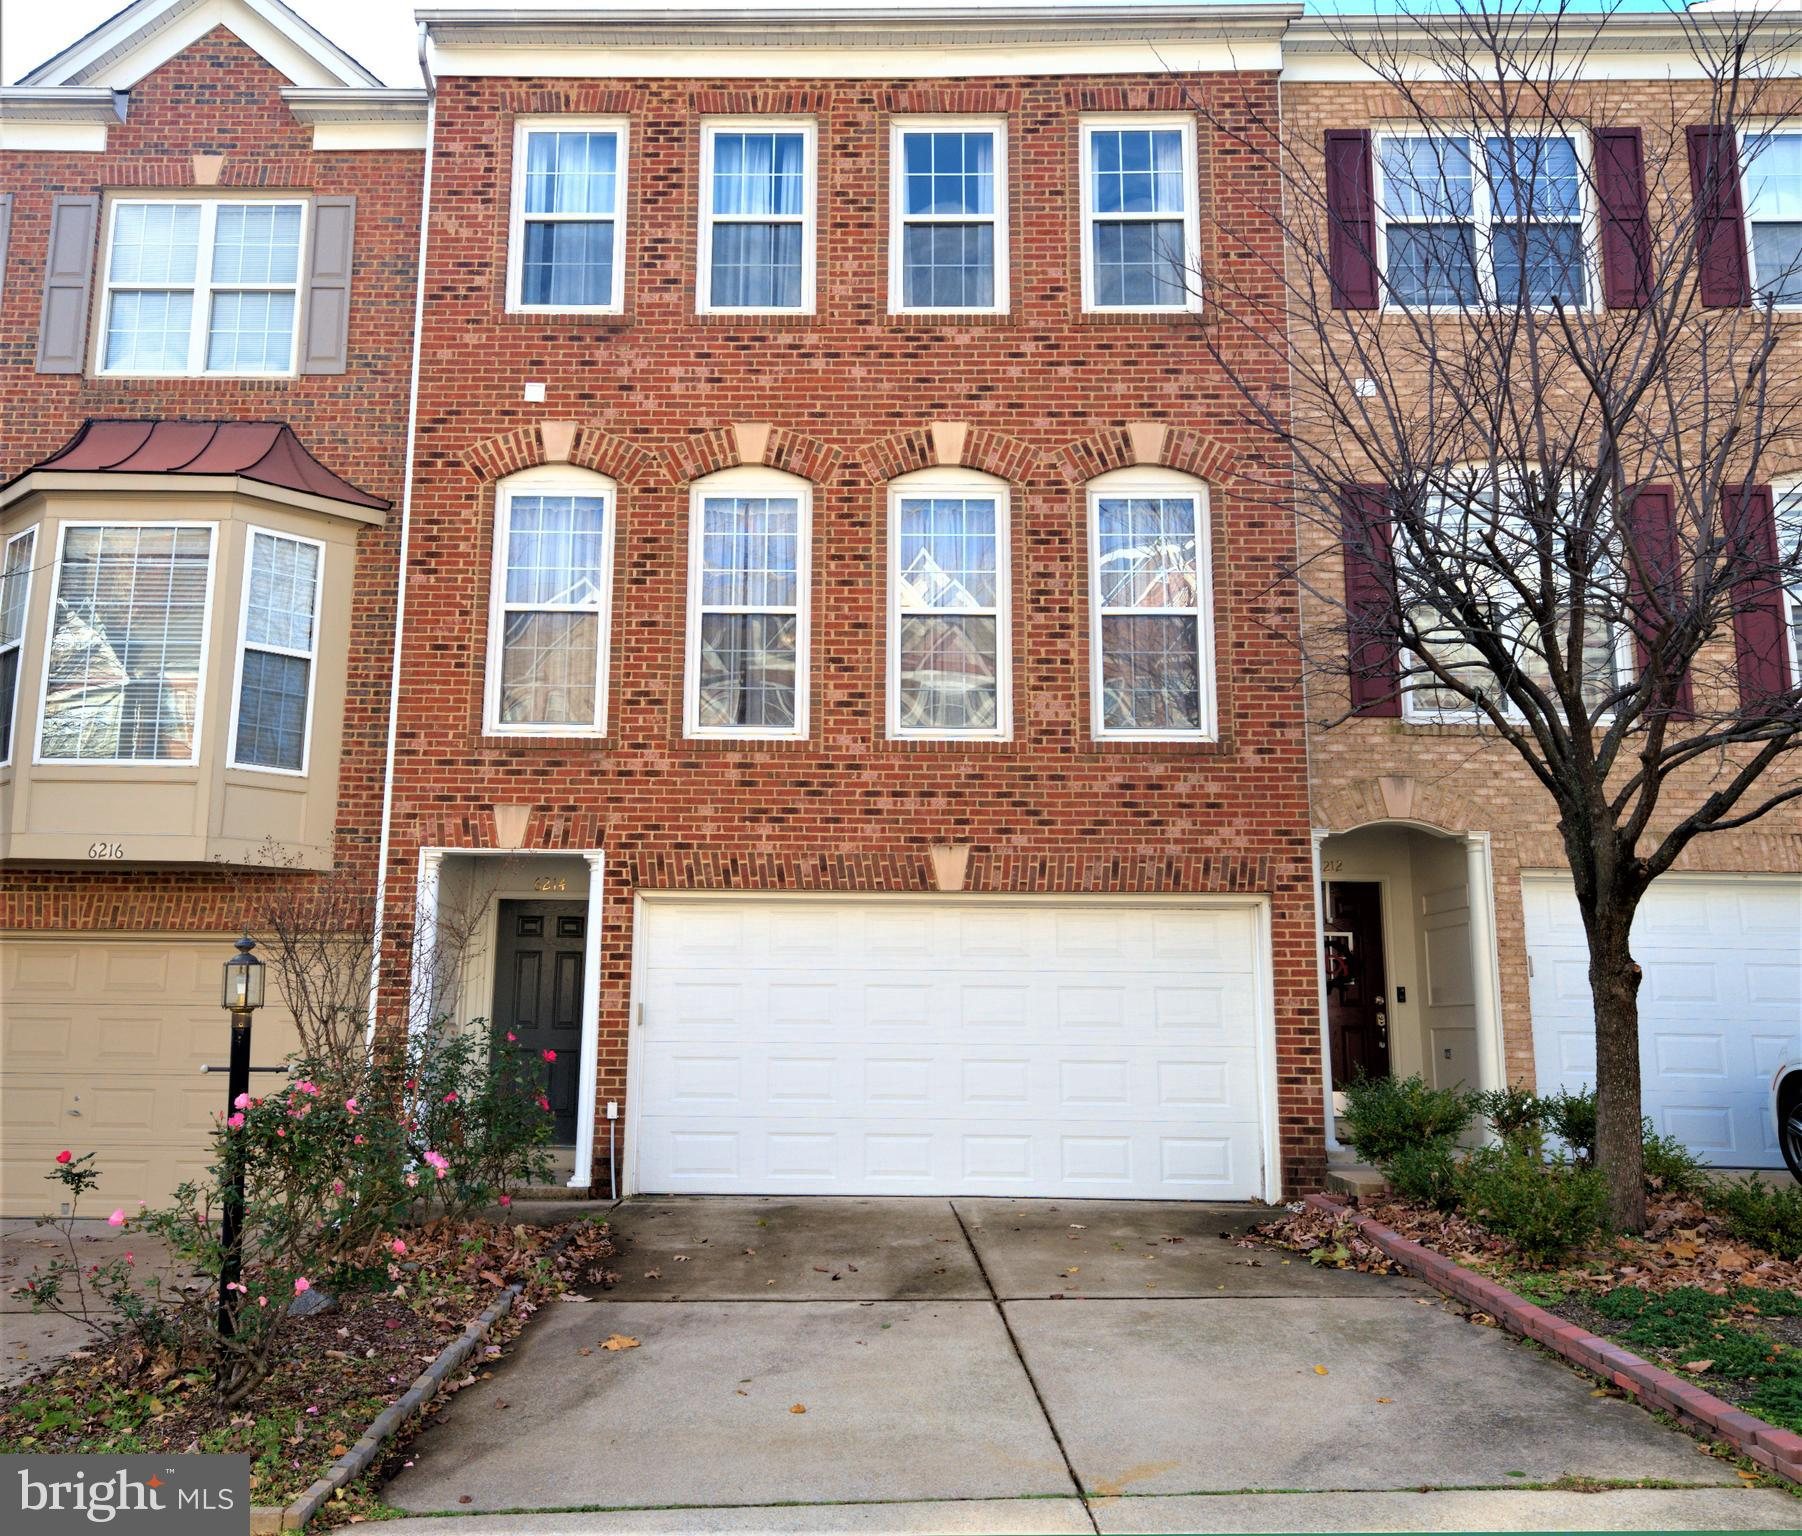 3-level Townhouse with 2-car garage, colonial style with crown molding, shining natural oak hardwood